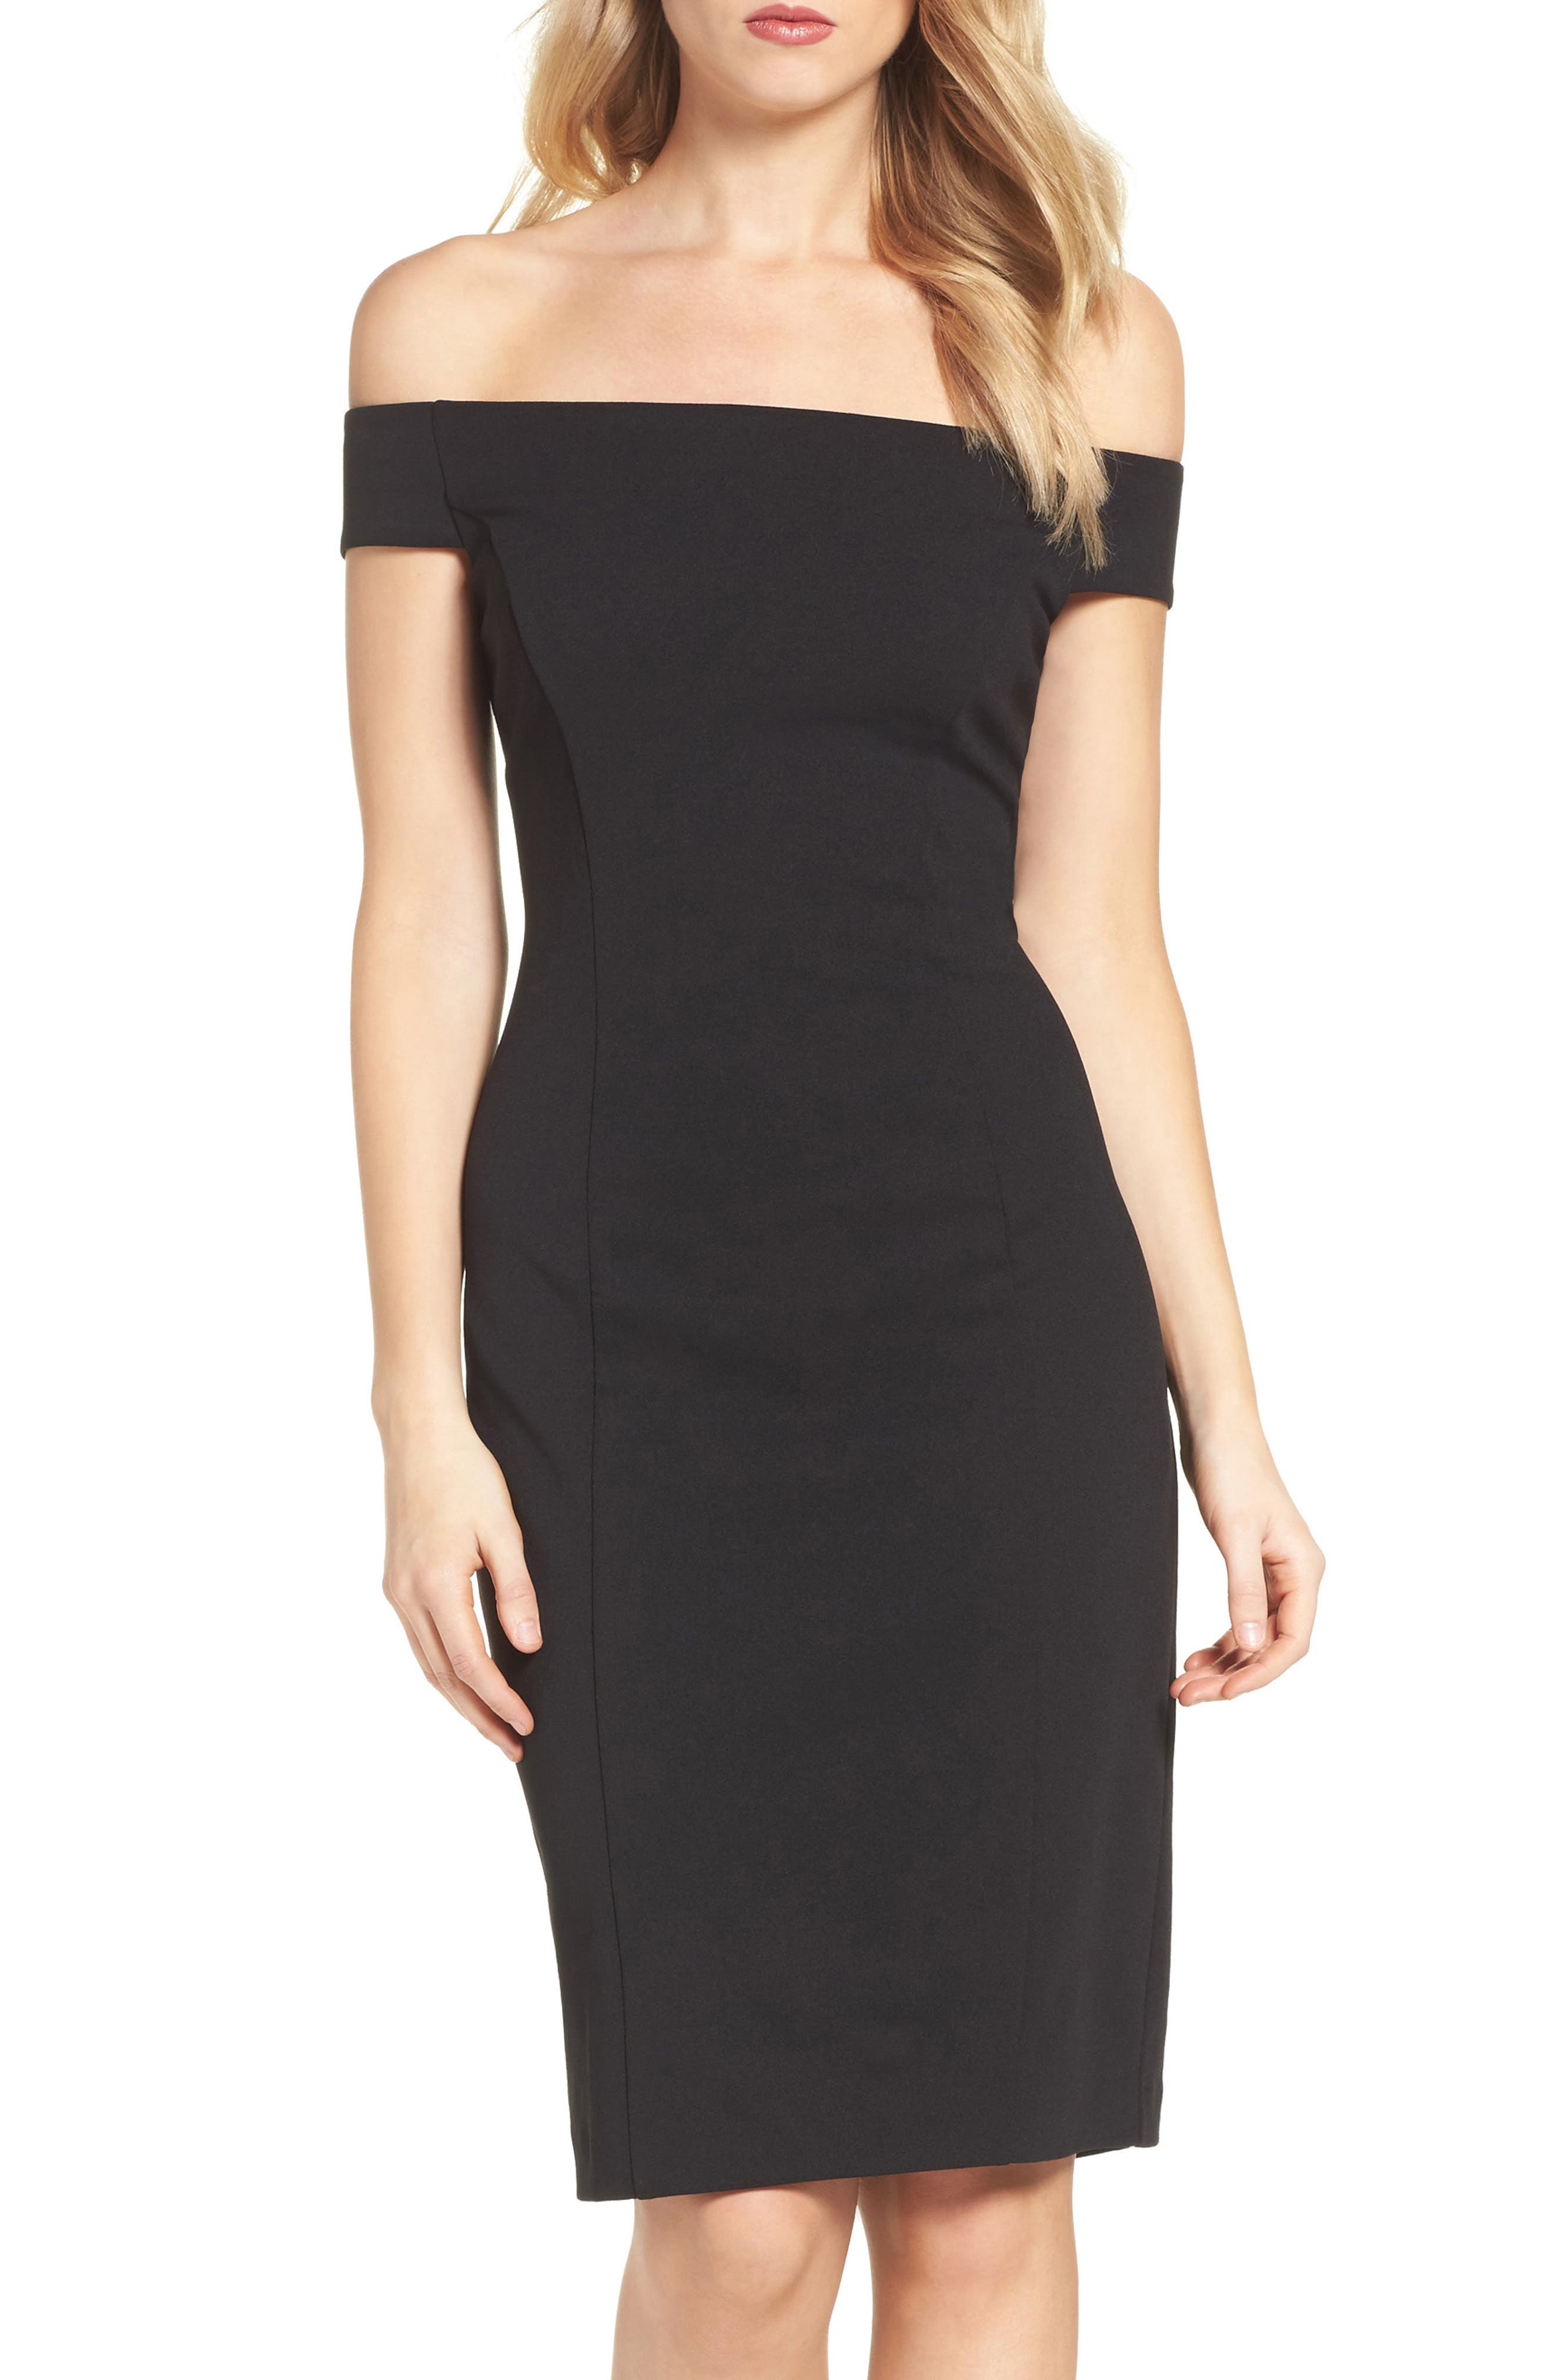 Main Image - Vince Camuto Crepe Sheath Dress (Regular & Petite)